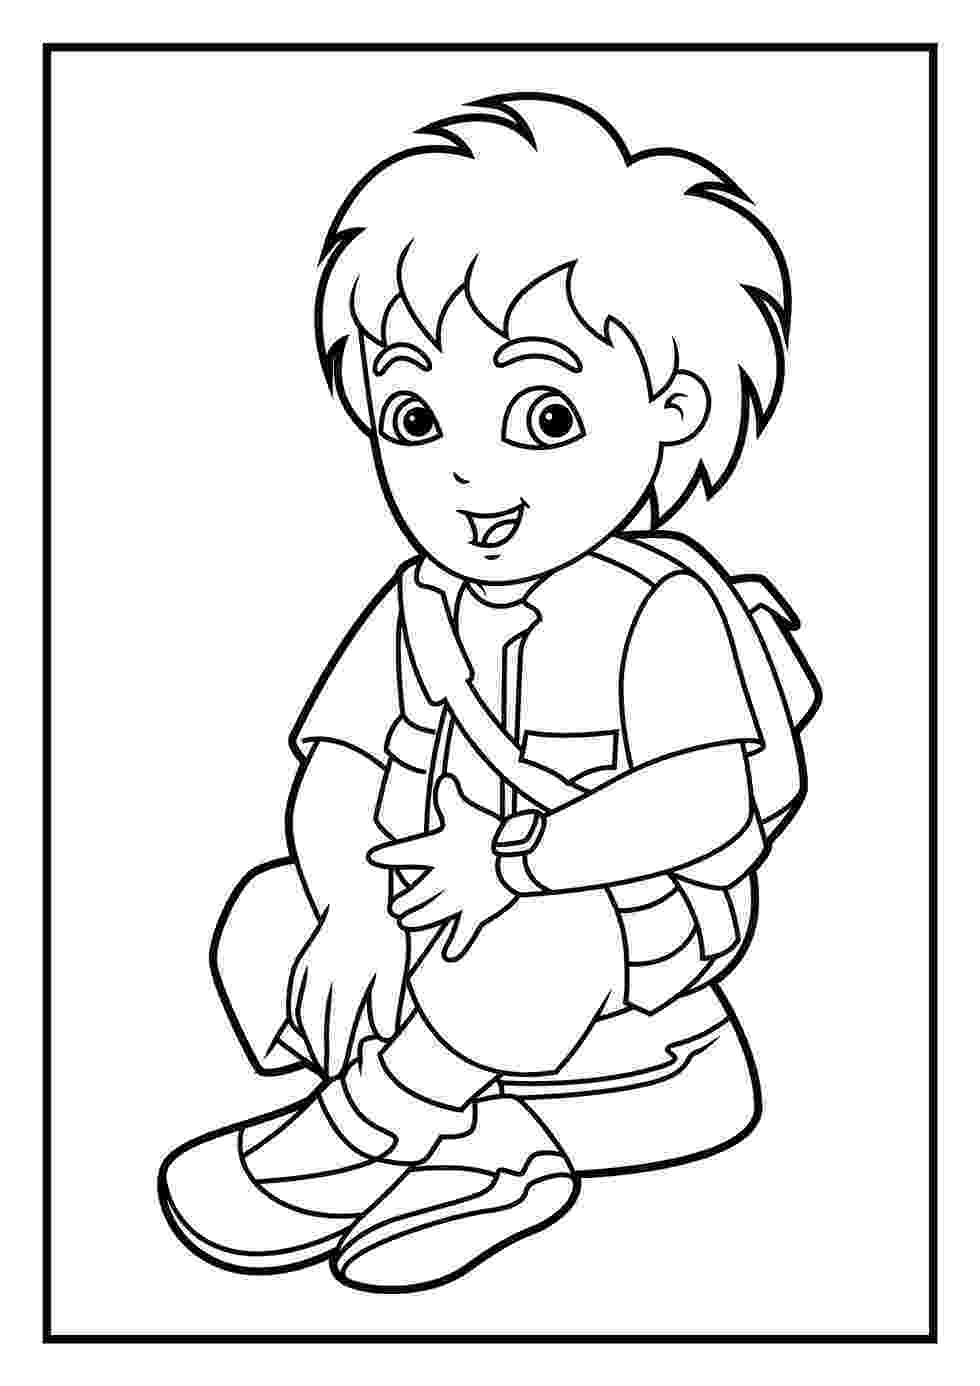 pictures to color printable free printable naruto coloring pages for kids printable color pictures to